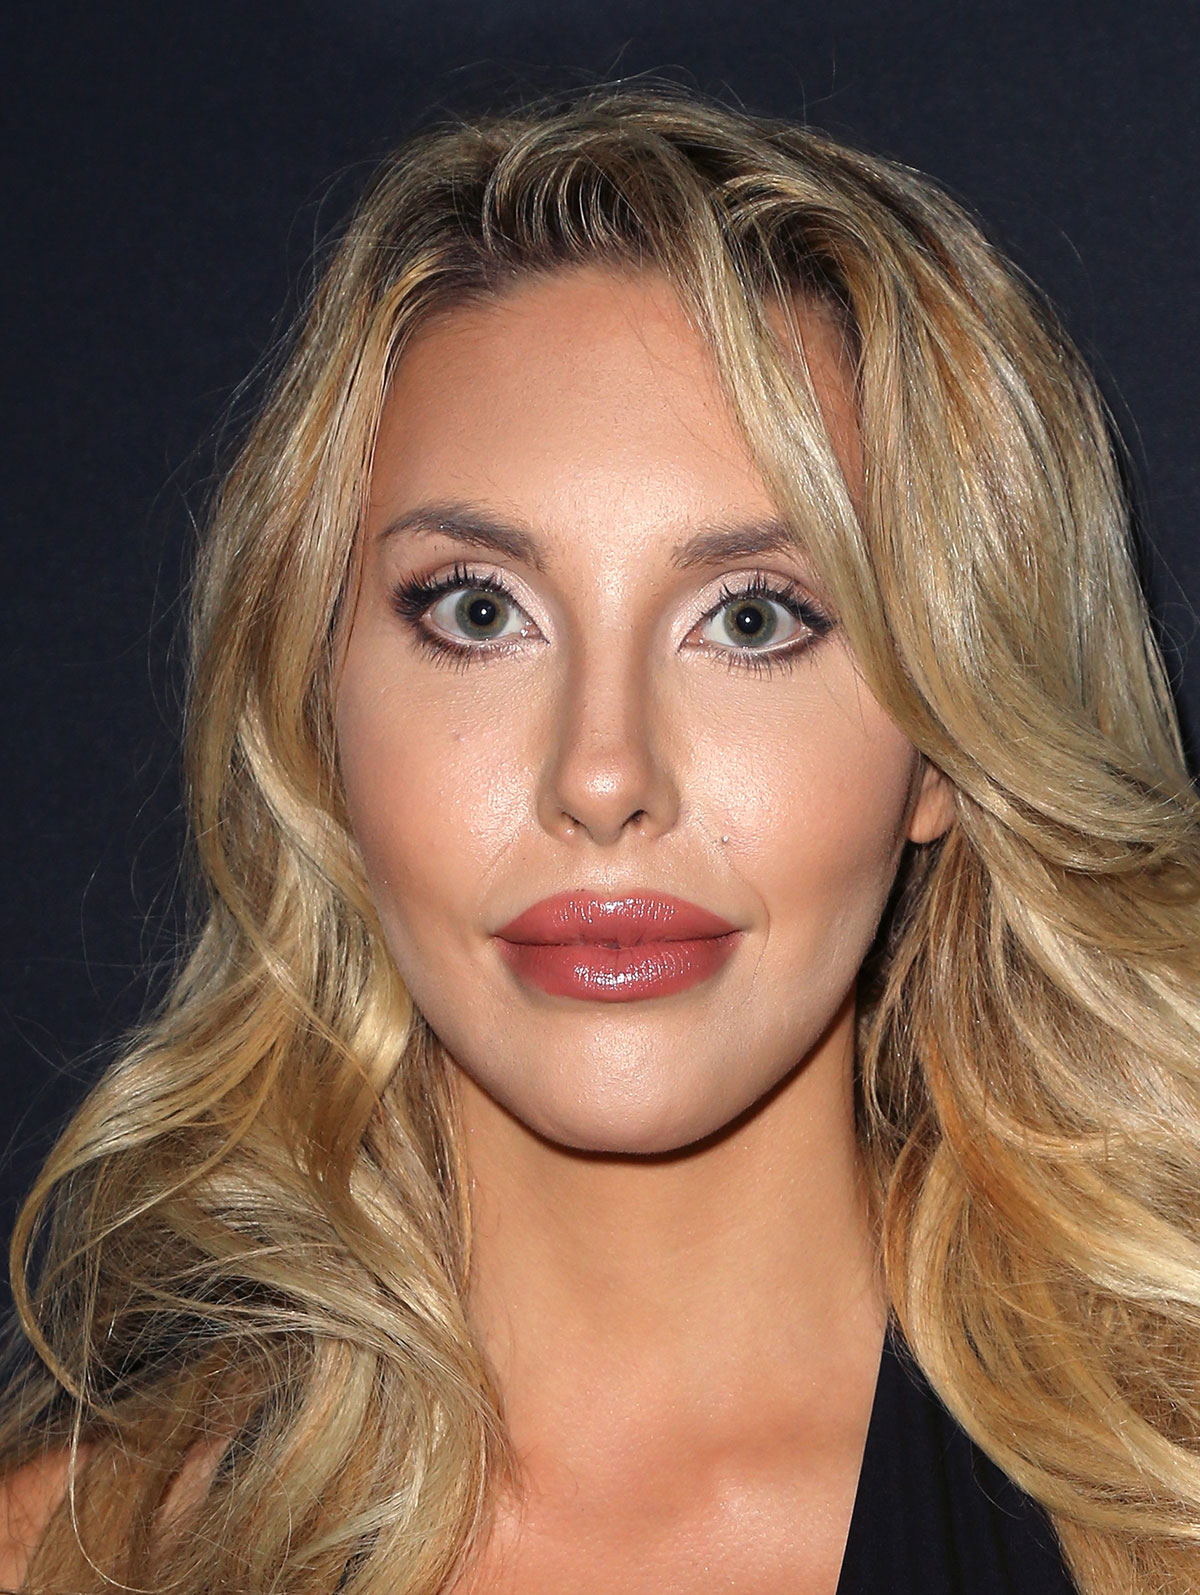 Chloe Lattanzi says she's had her lip injections removed